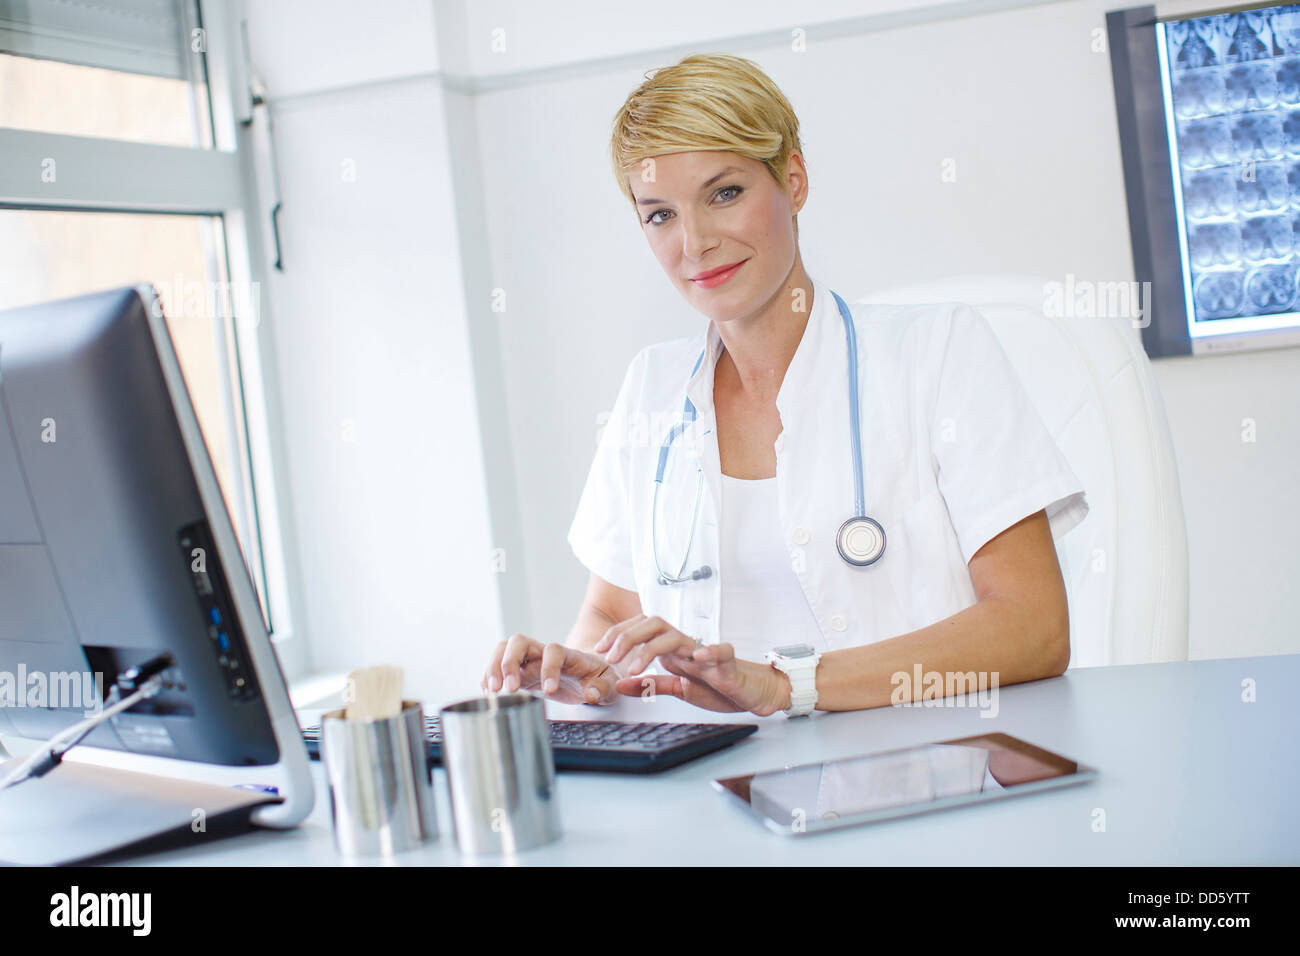 Doctor using Computer - Stock Image